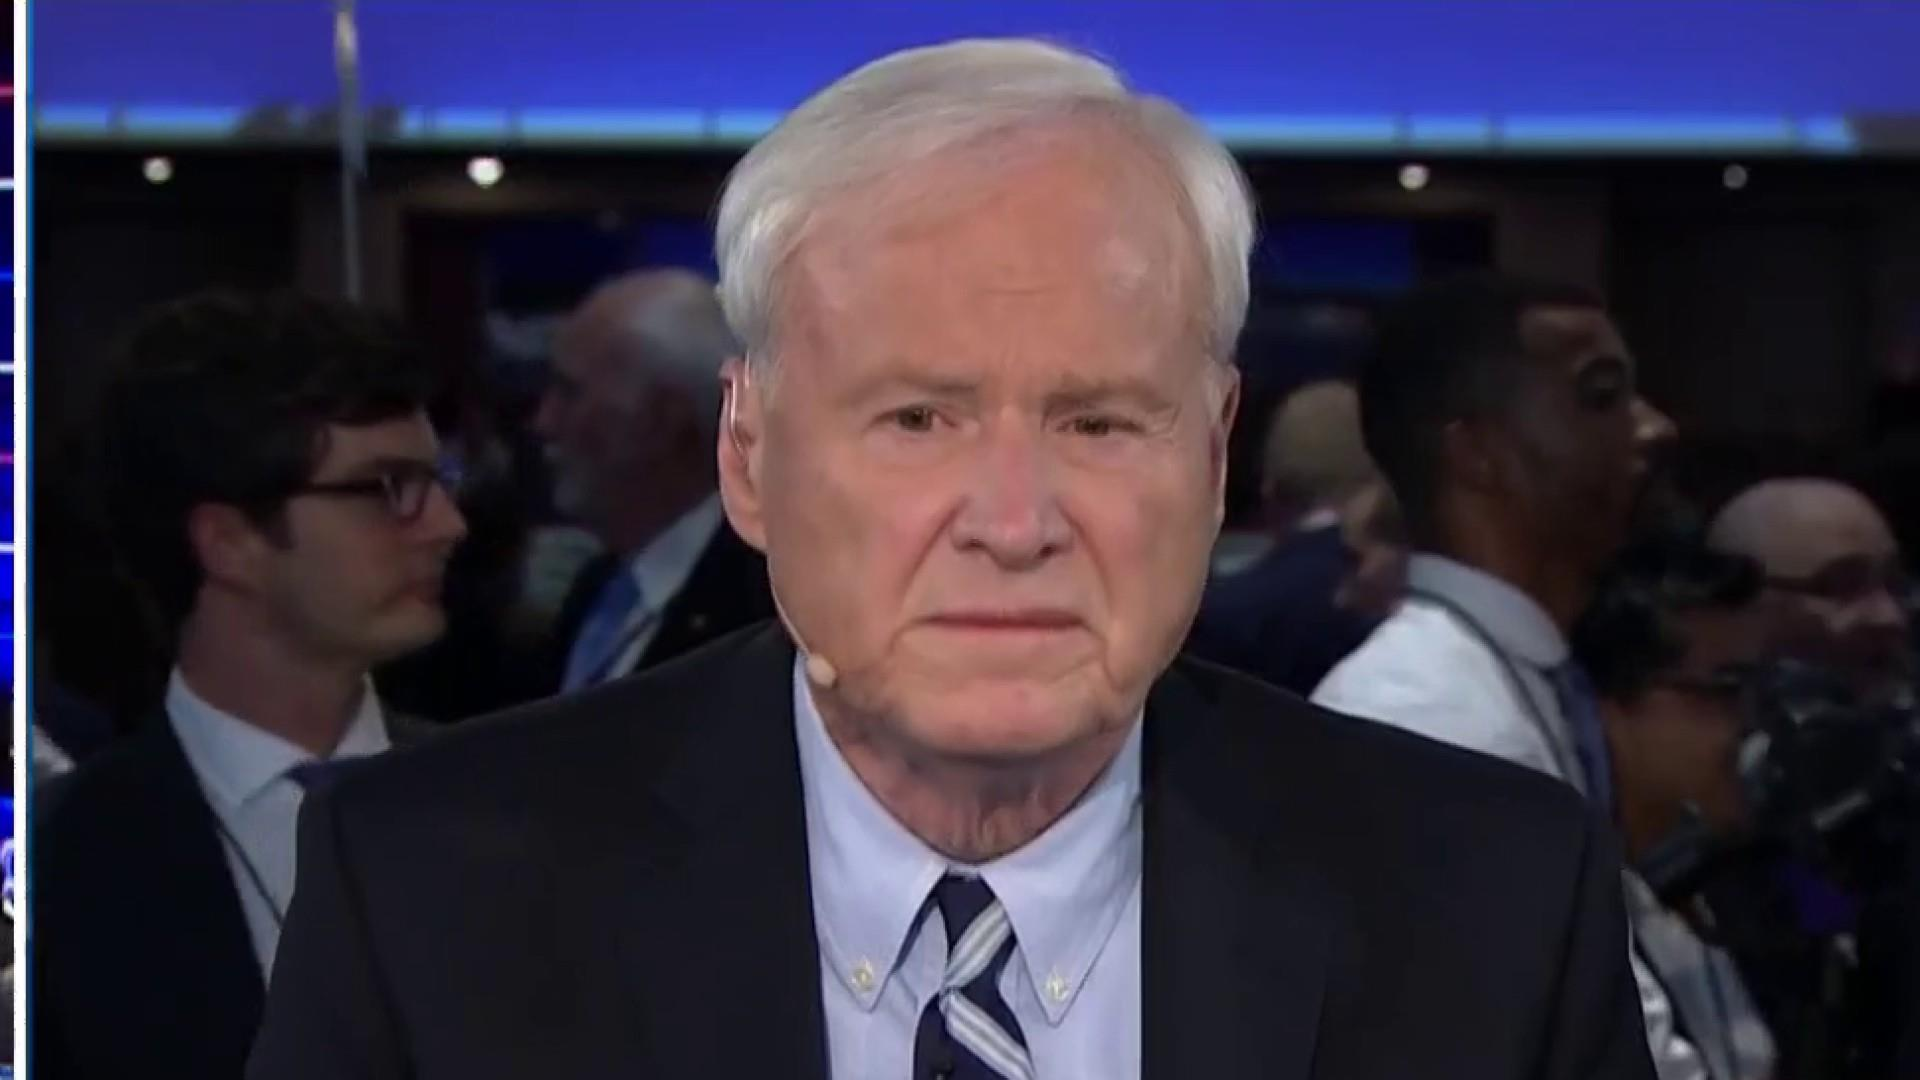 Chris Matthews: The winner of night one? Joe Biden